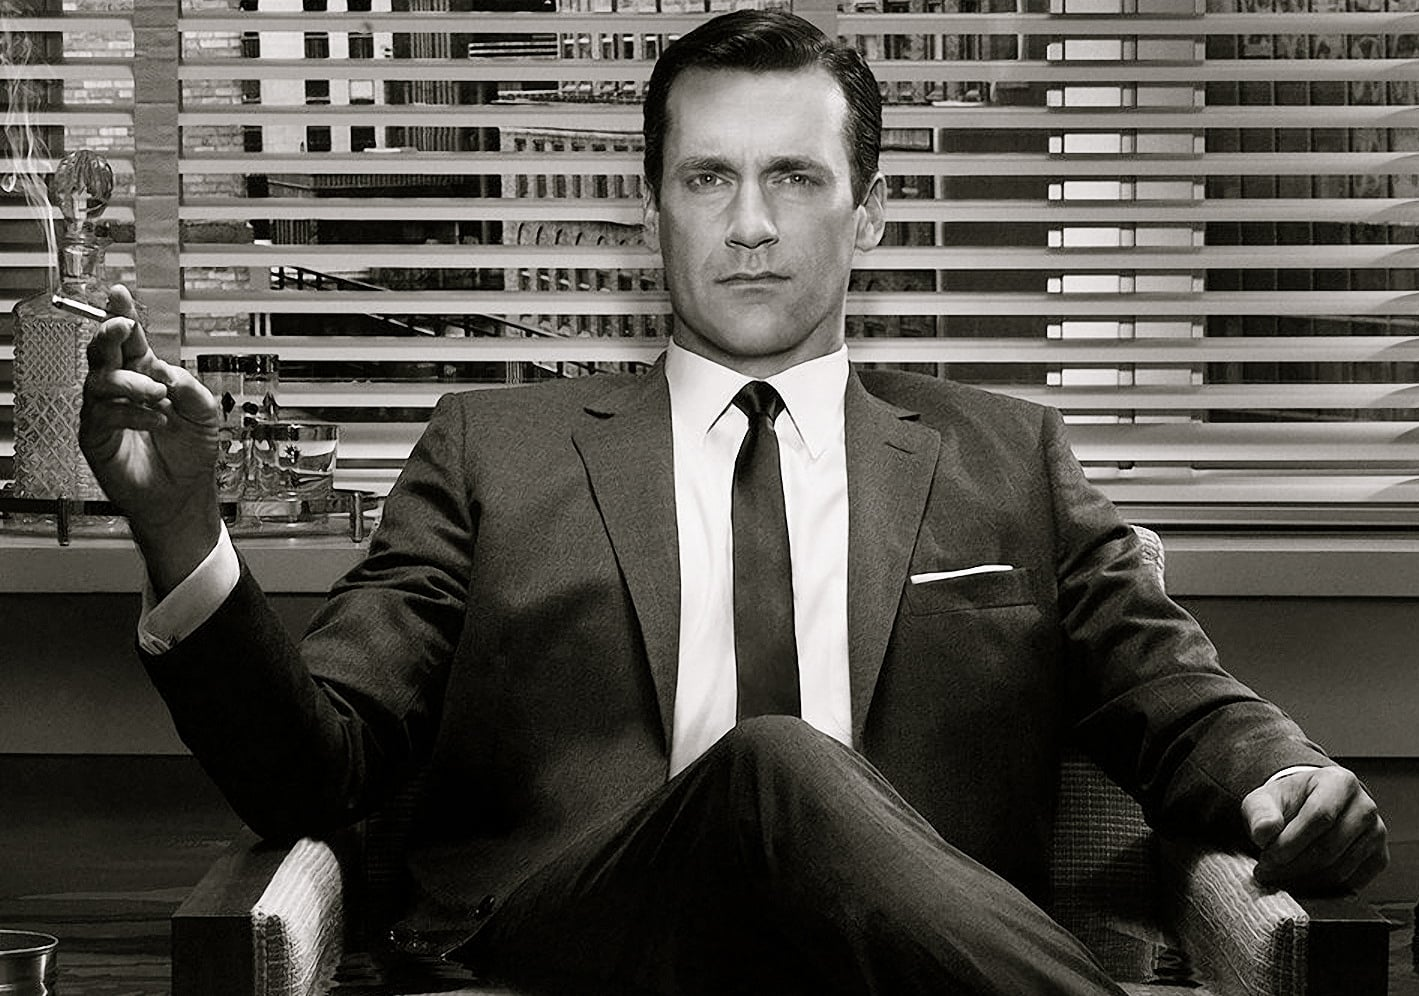 donald-draper-mad-men-1920x1080-wallpaper-540